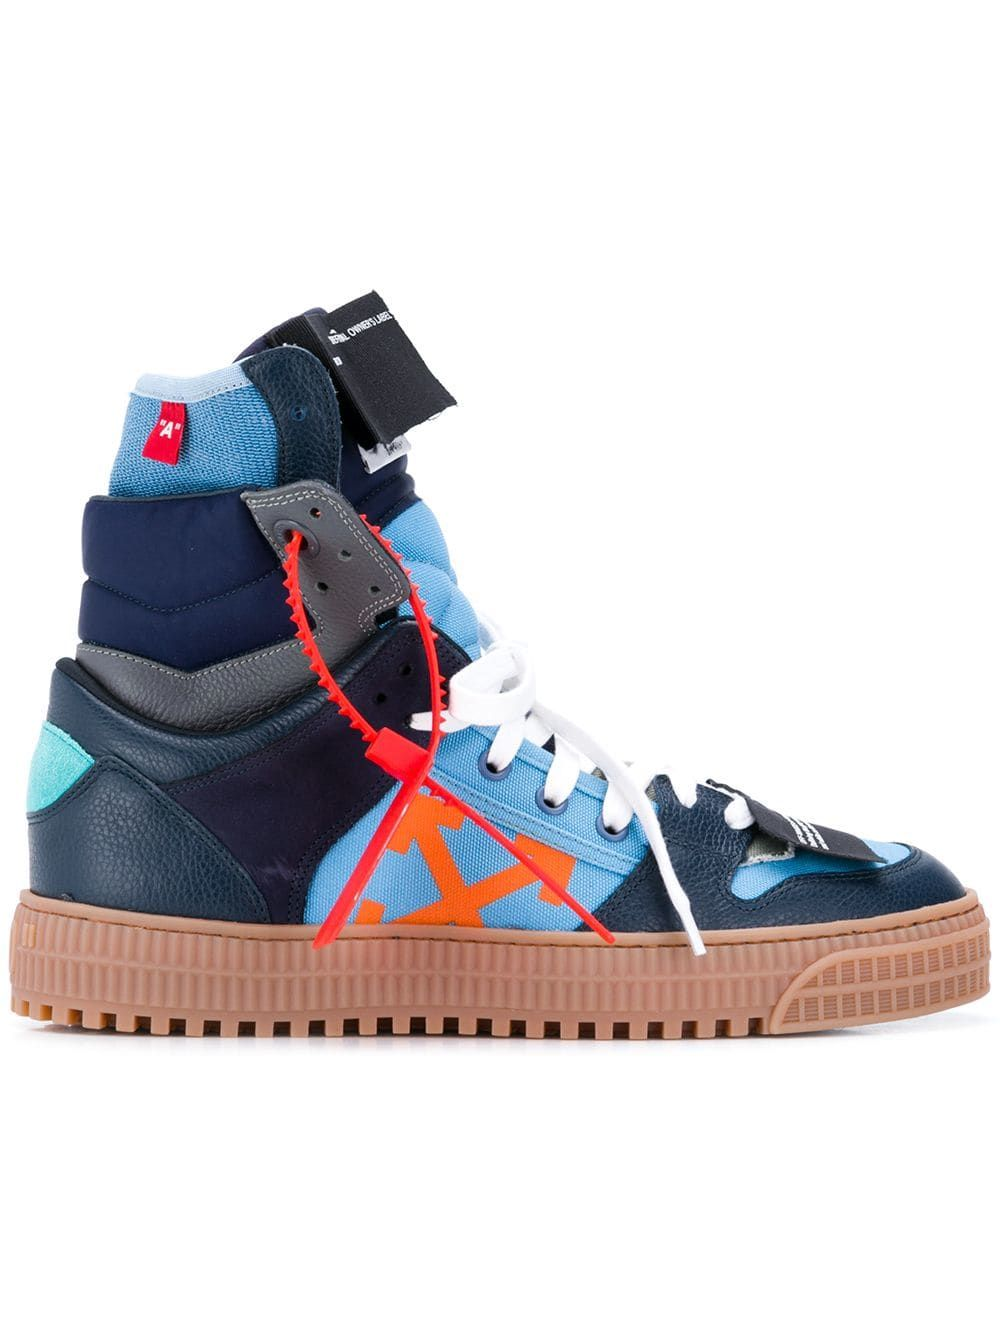 White high top sneakers, Sneakers blue